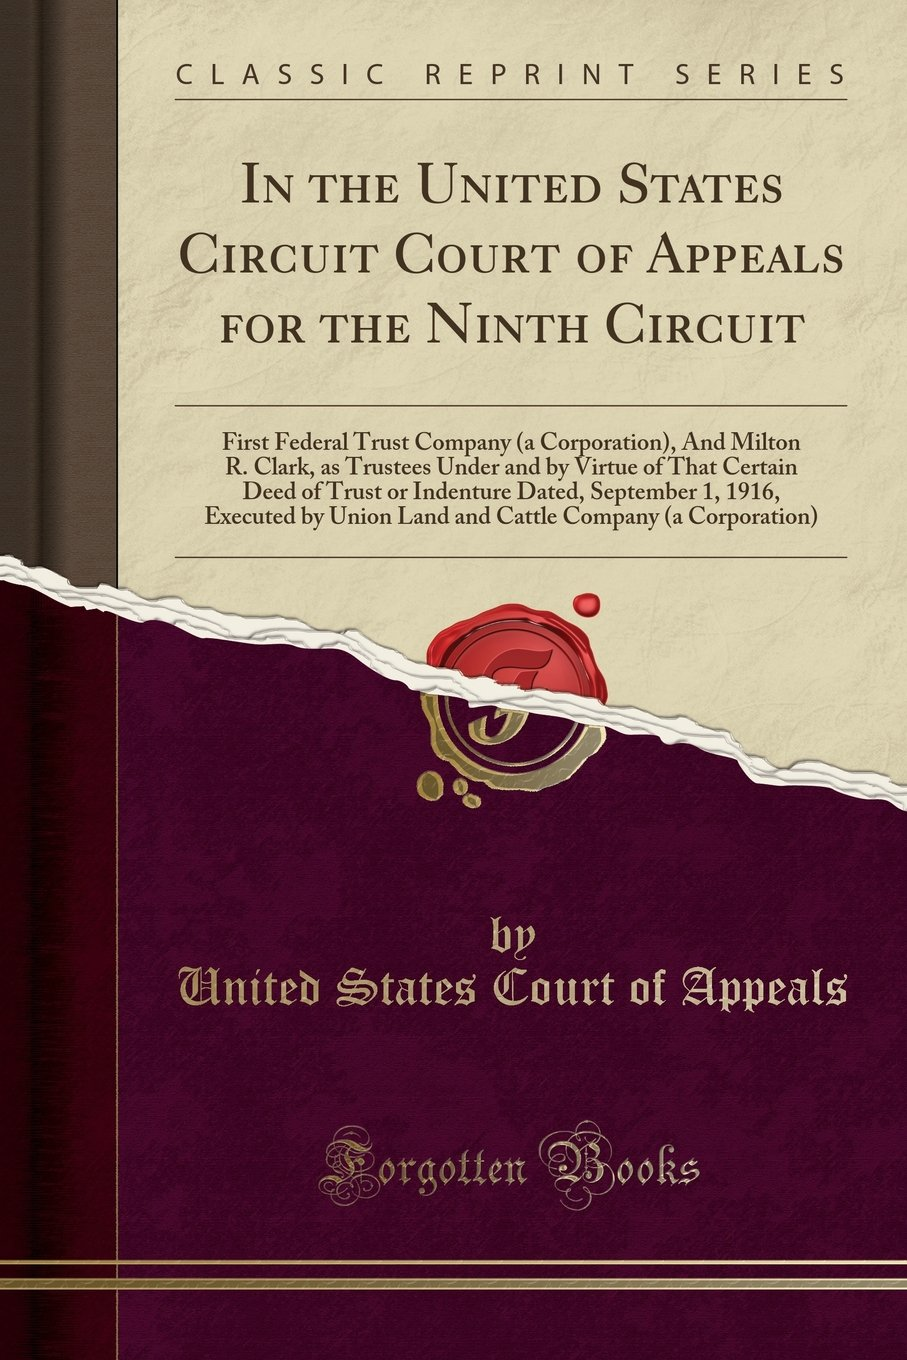 Download In the United States Circuit Court of Appeals for the Ninth Circuit: First Federal Trust Company (a Corporation), And Milton R. Clark, as Trustees ... Dated, September 1, 1916, Executed by Union L pdf epub